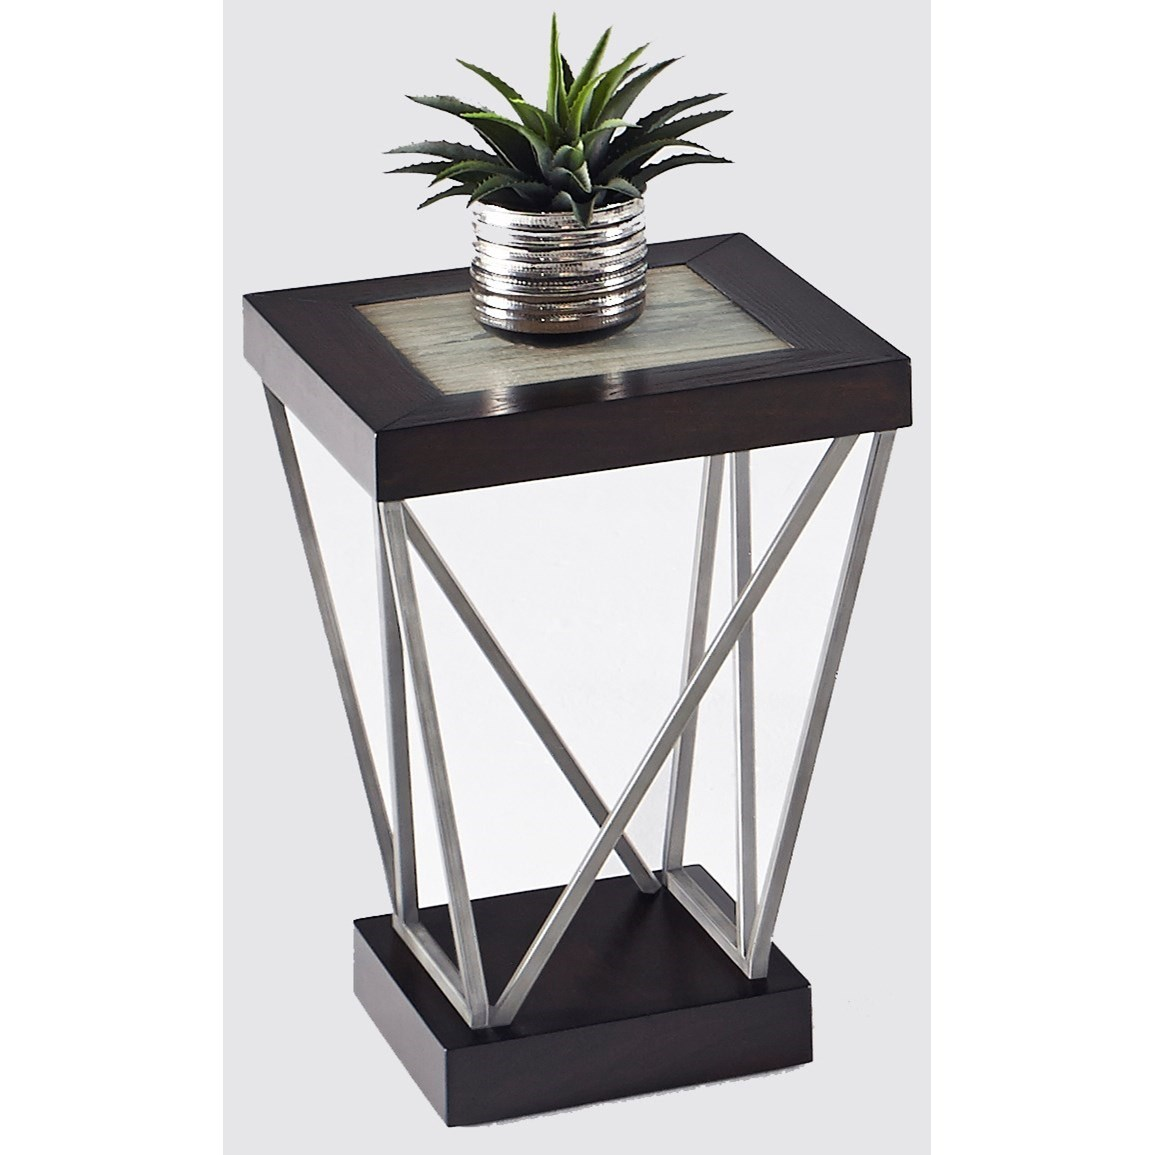 East Bay Chairside Table by Progressive Furniture at Van Hill Furniture